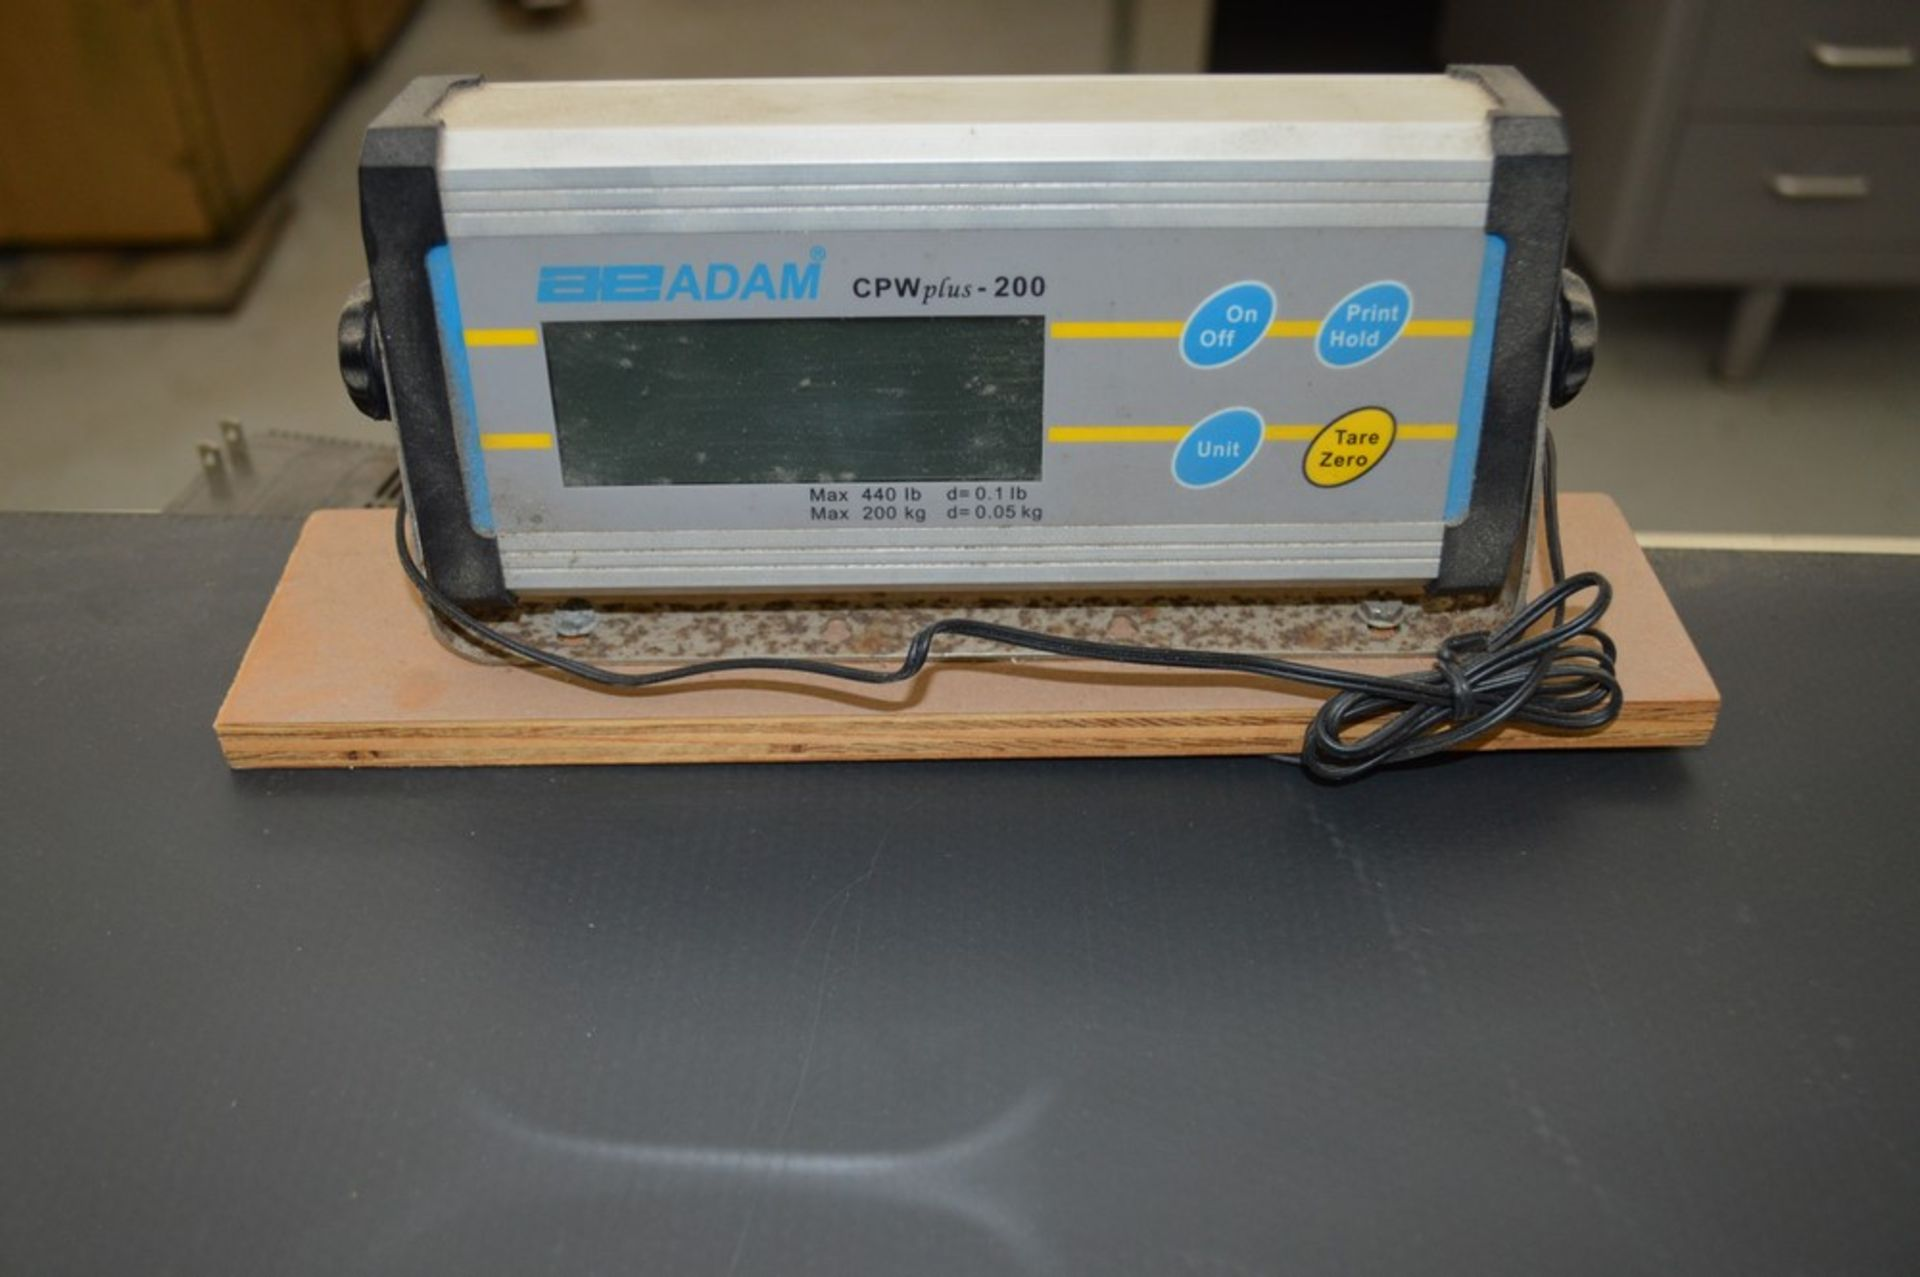 35 1/4 x 23 1/4 440 lb scale with digital read out, Adam equipment 2001 control - Image 2 of 4